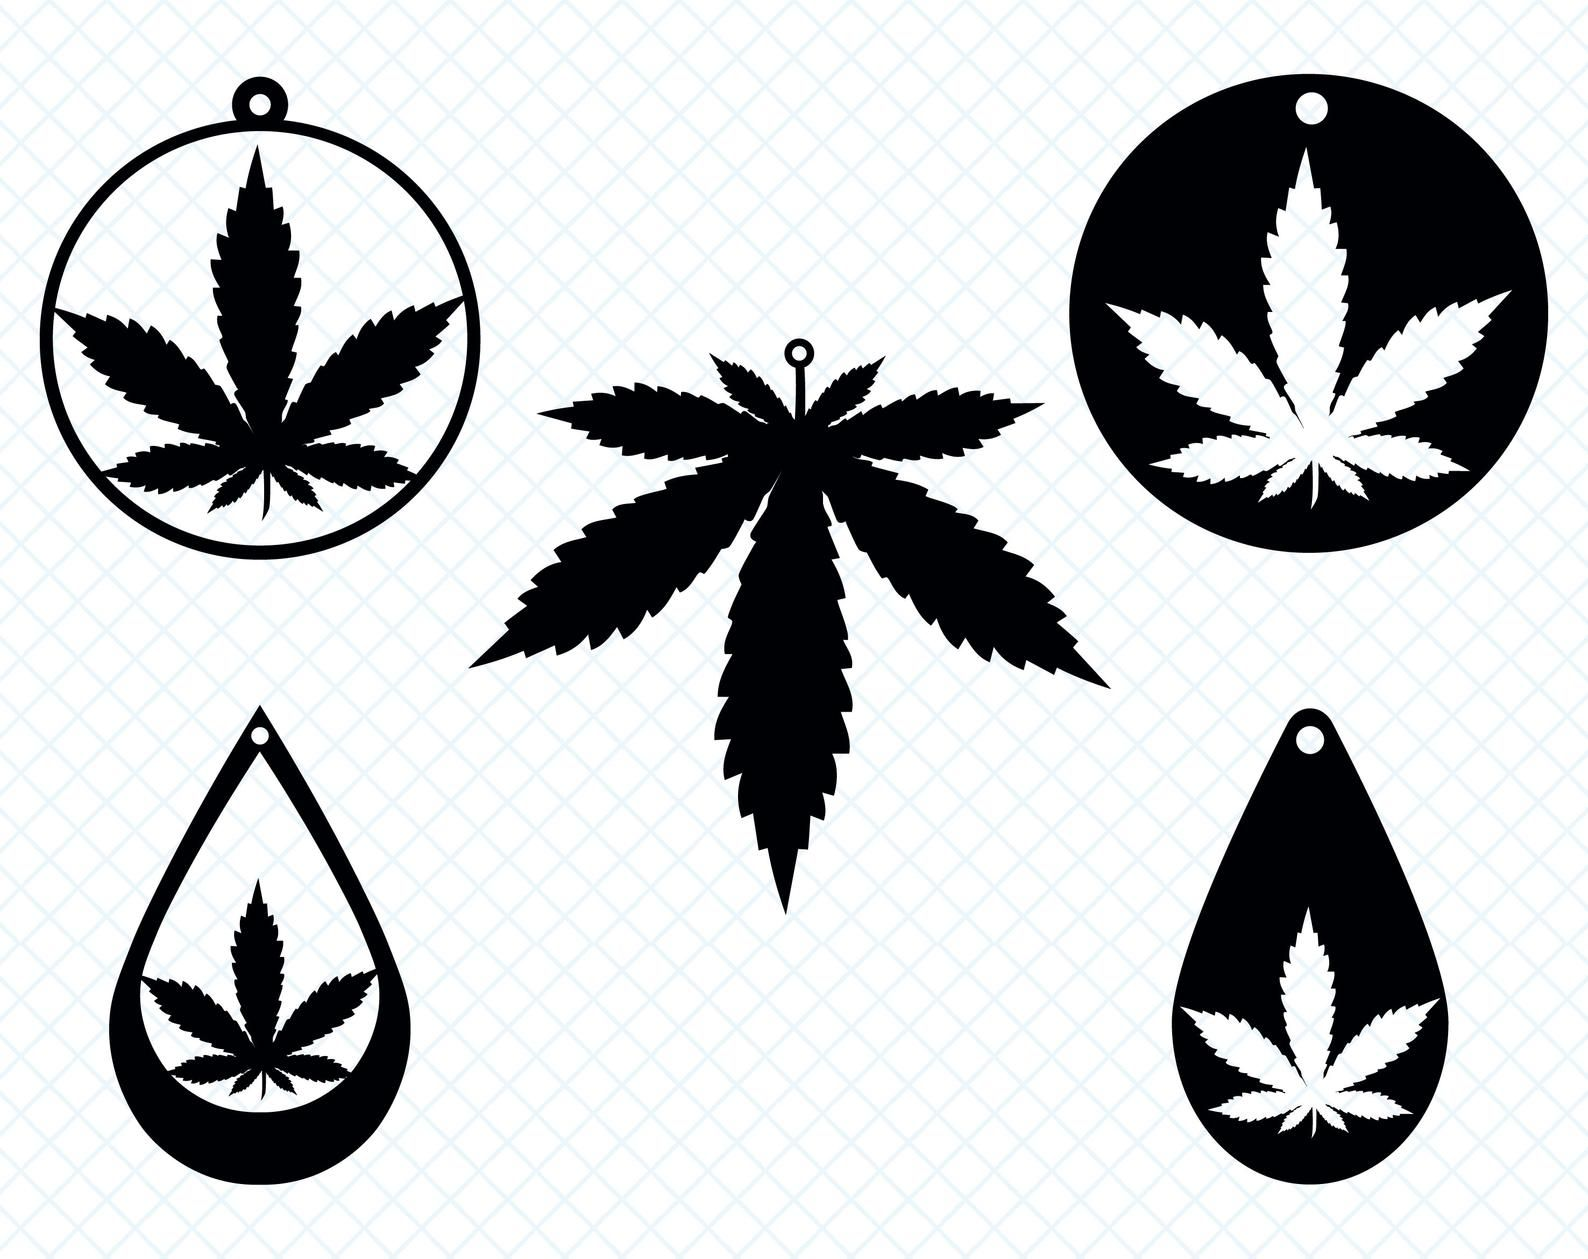 Pot Tattoo Designs Best Tattoo Designs Tattoo Design Drawings Tattoo Designs For Girls